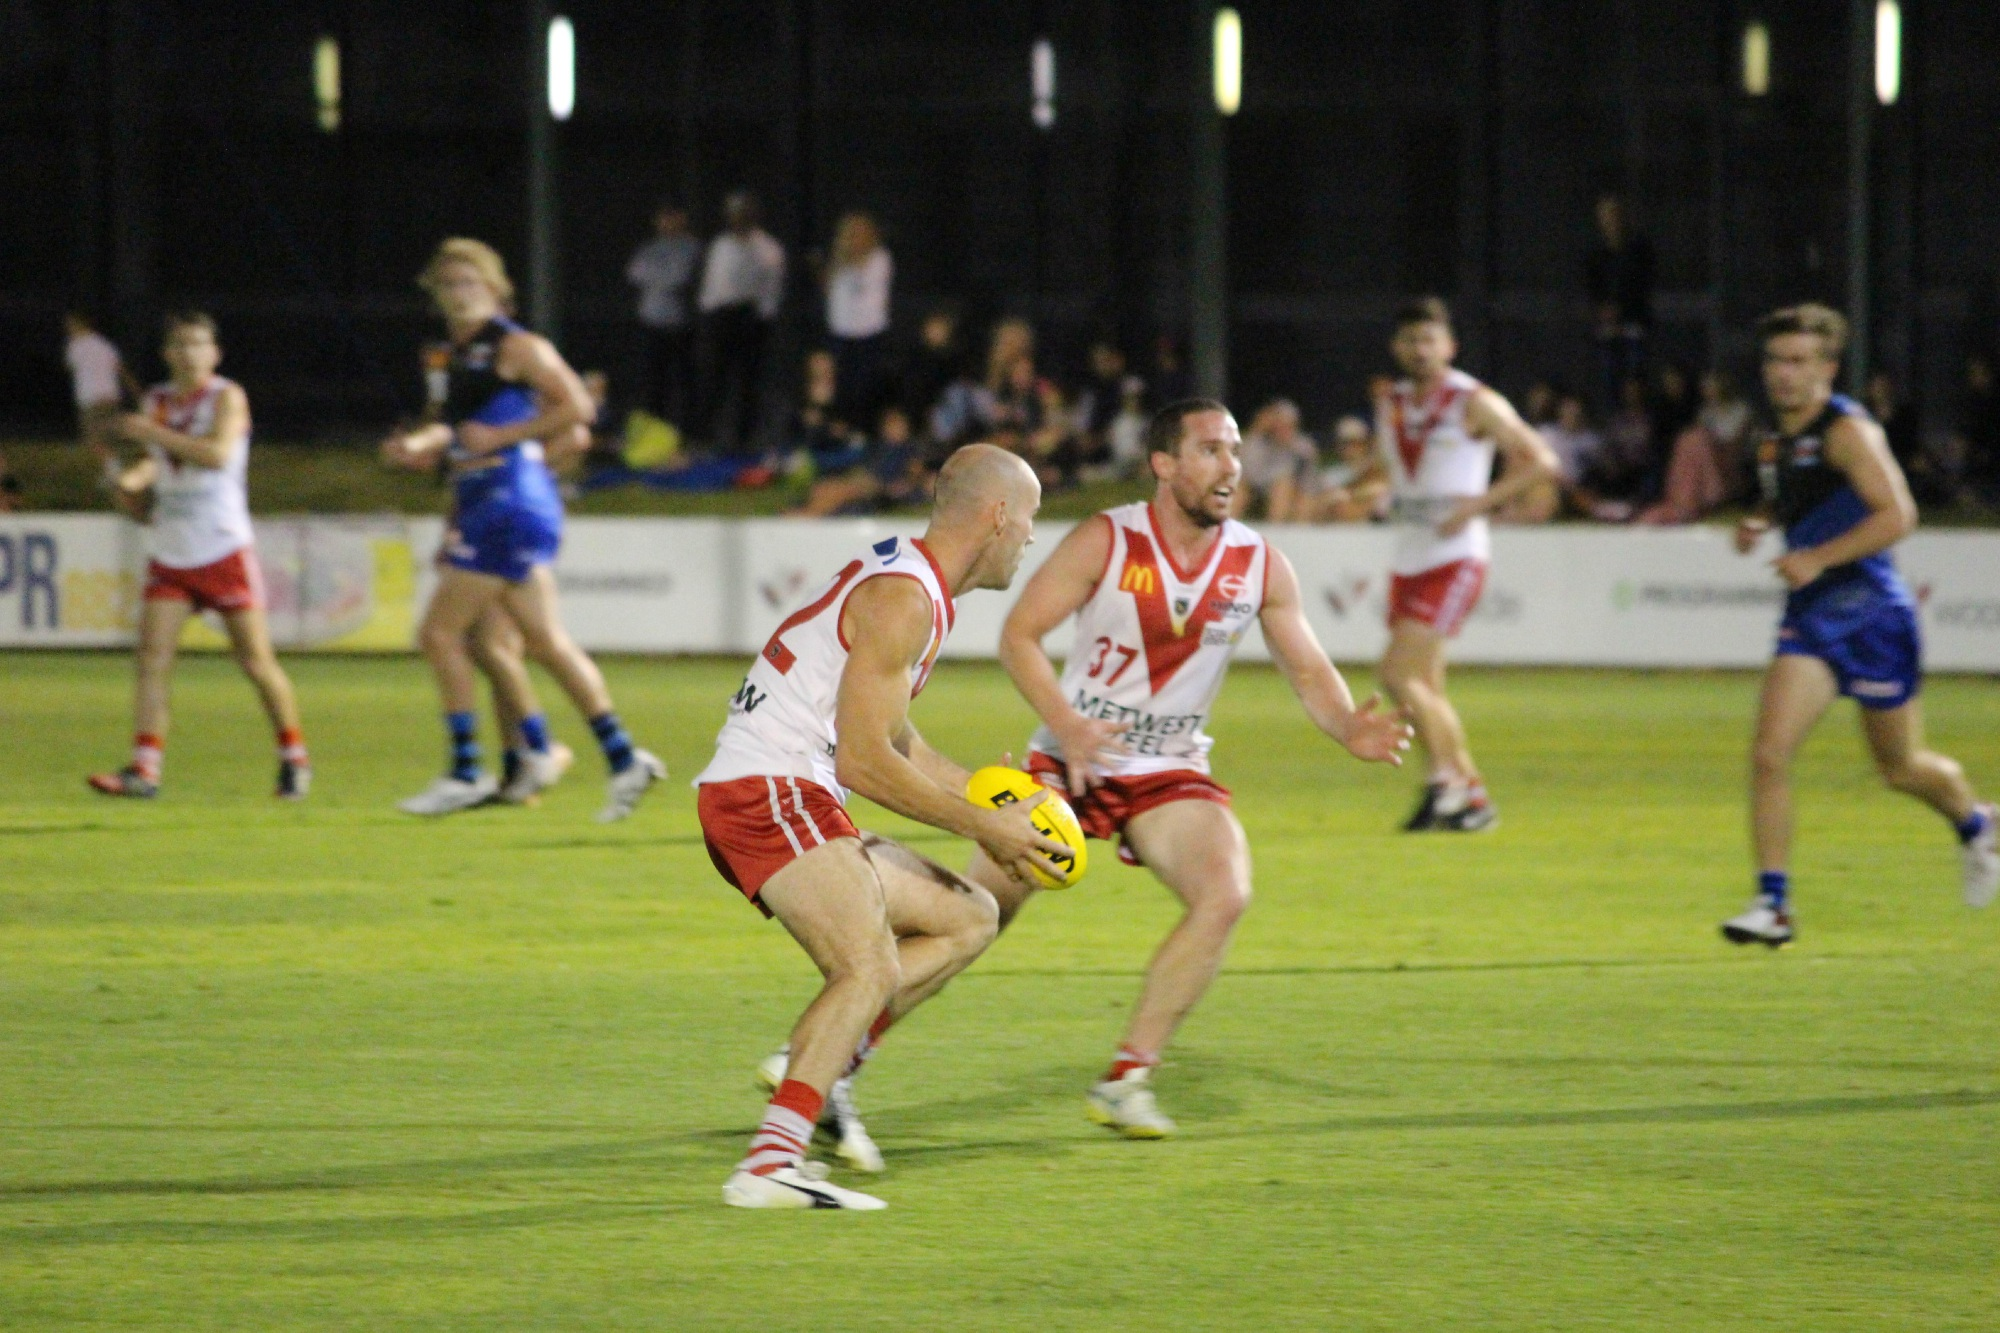 South Fremantle teammates Ryan Cook and Ashton Hams among nine Fremantle-based players picked in WA side tackling Tasmania on Saturday. Picture: Bryce Luff.